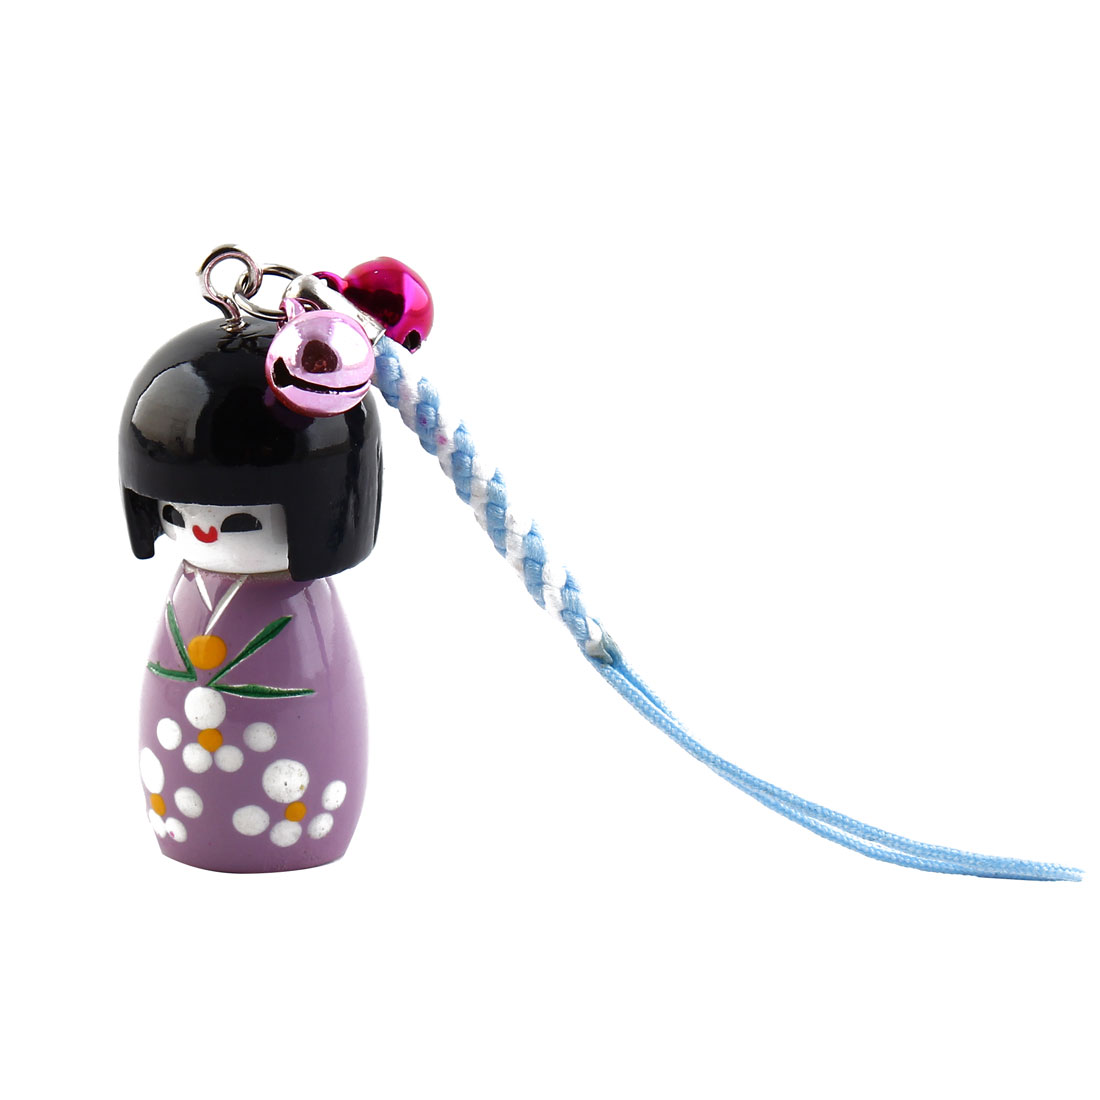 Purple Cartoon Japenese Girl Doll Pendant Strap Hanger for Cell Phone Mp4